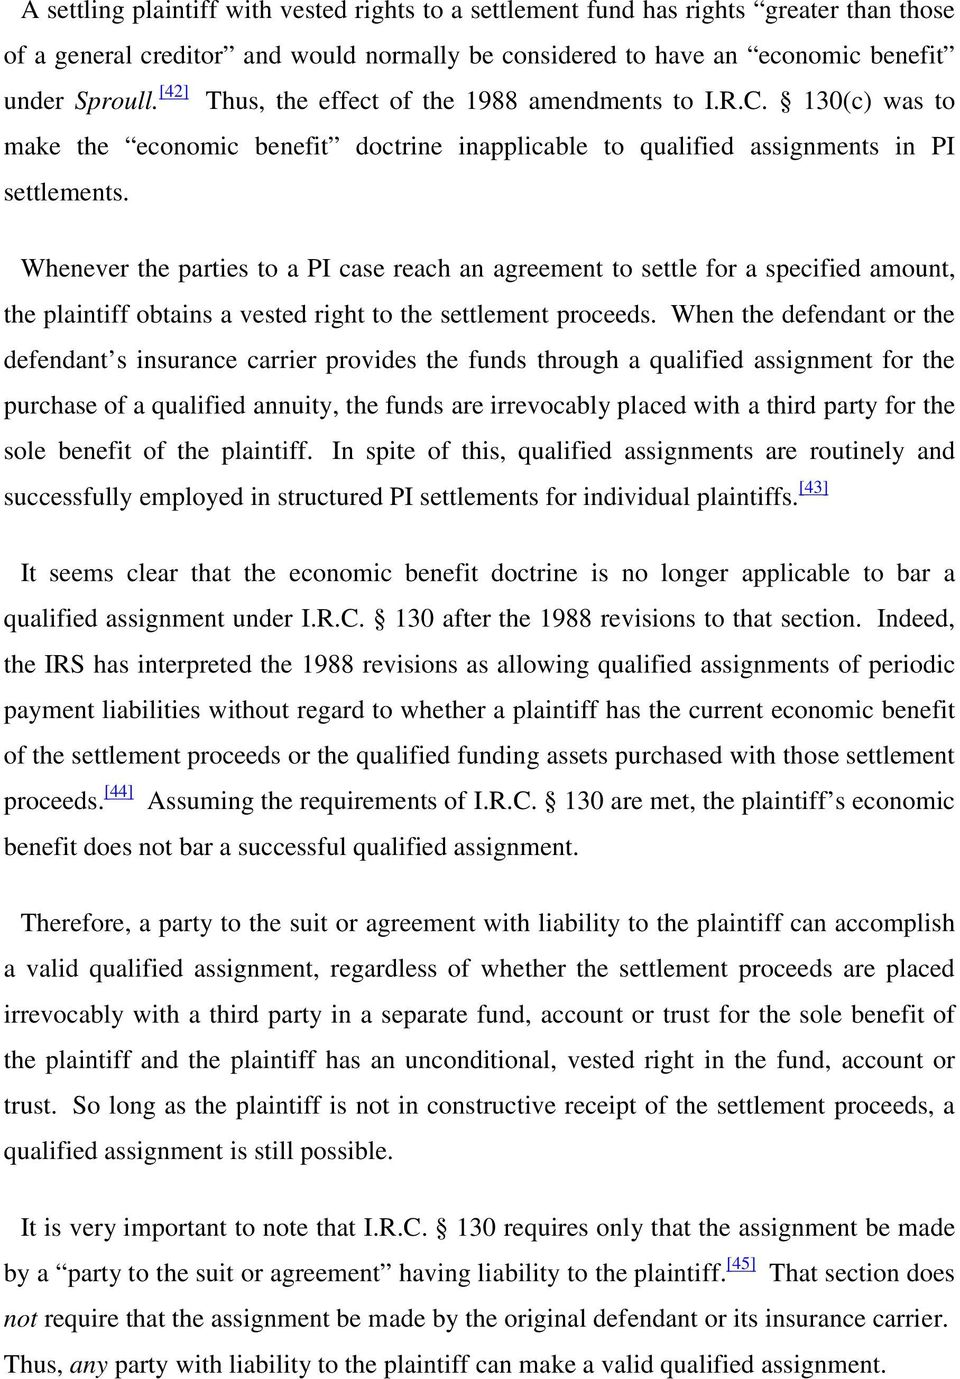 Whenever the parties to a PI case reach an agreement to settle for a specified amount, the plaintiff obtains a vested right to the settlement proceeds.